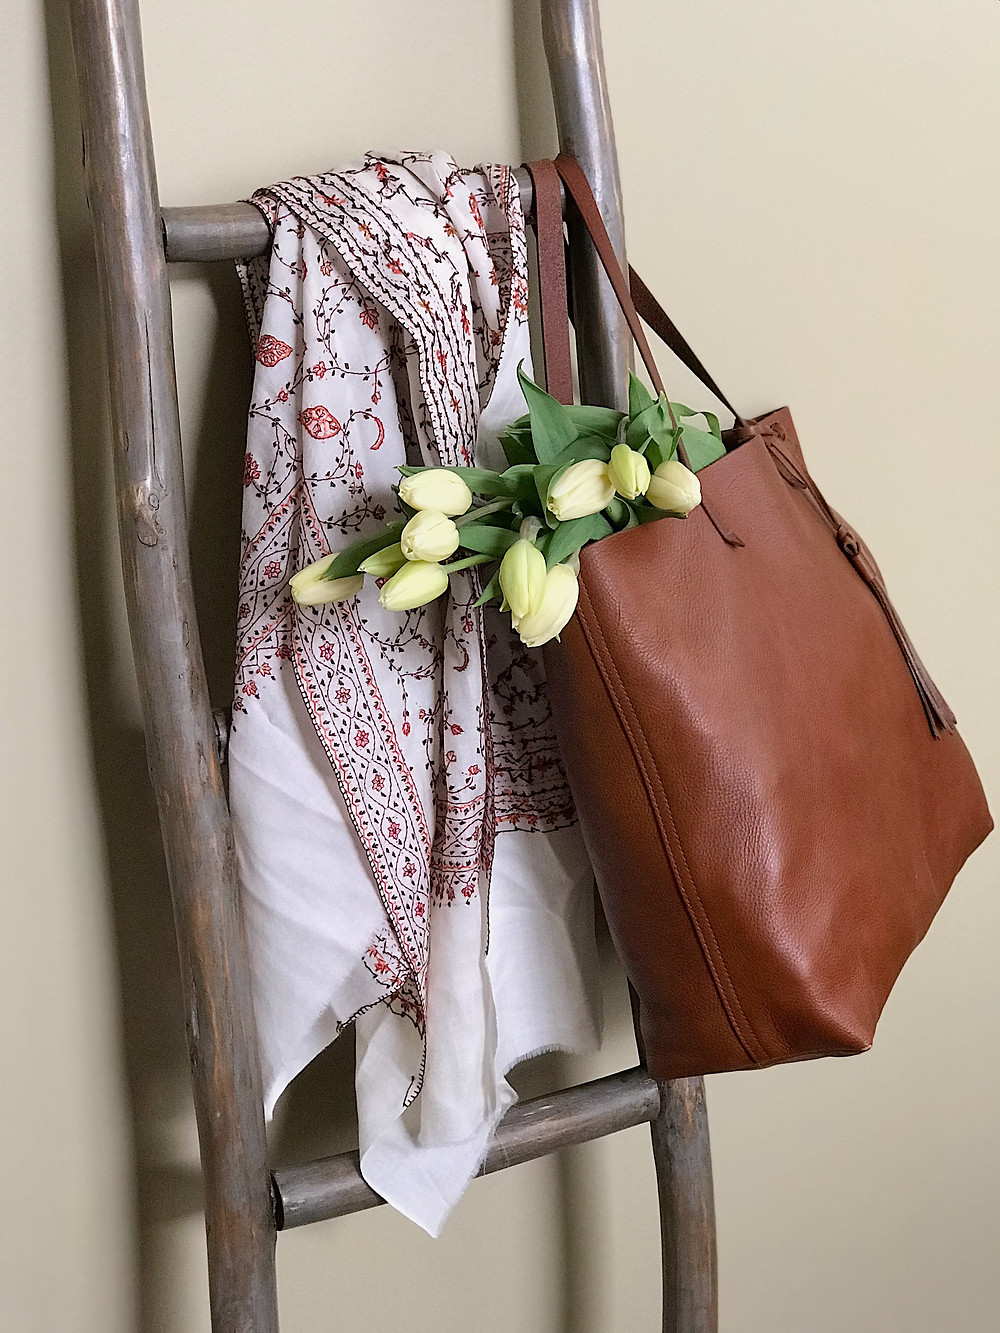 ladder, scarf, tote, tulips